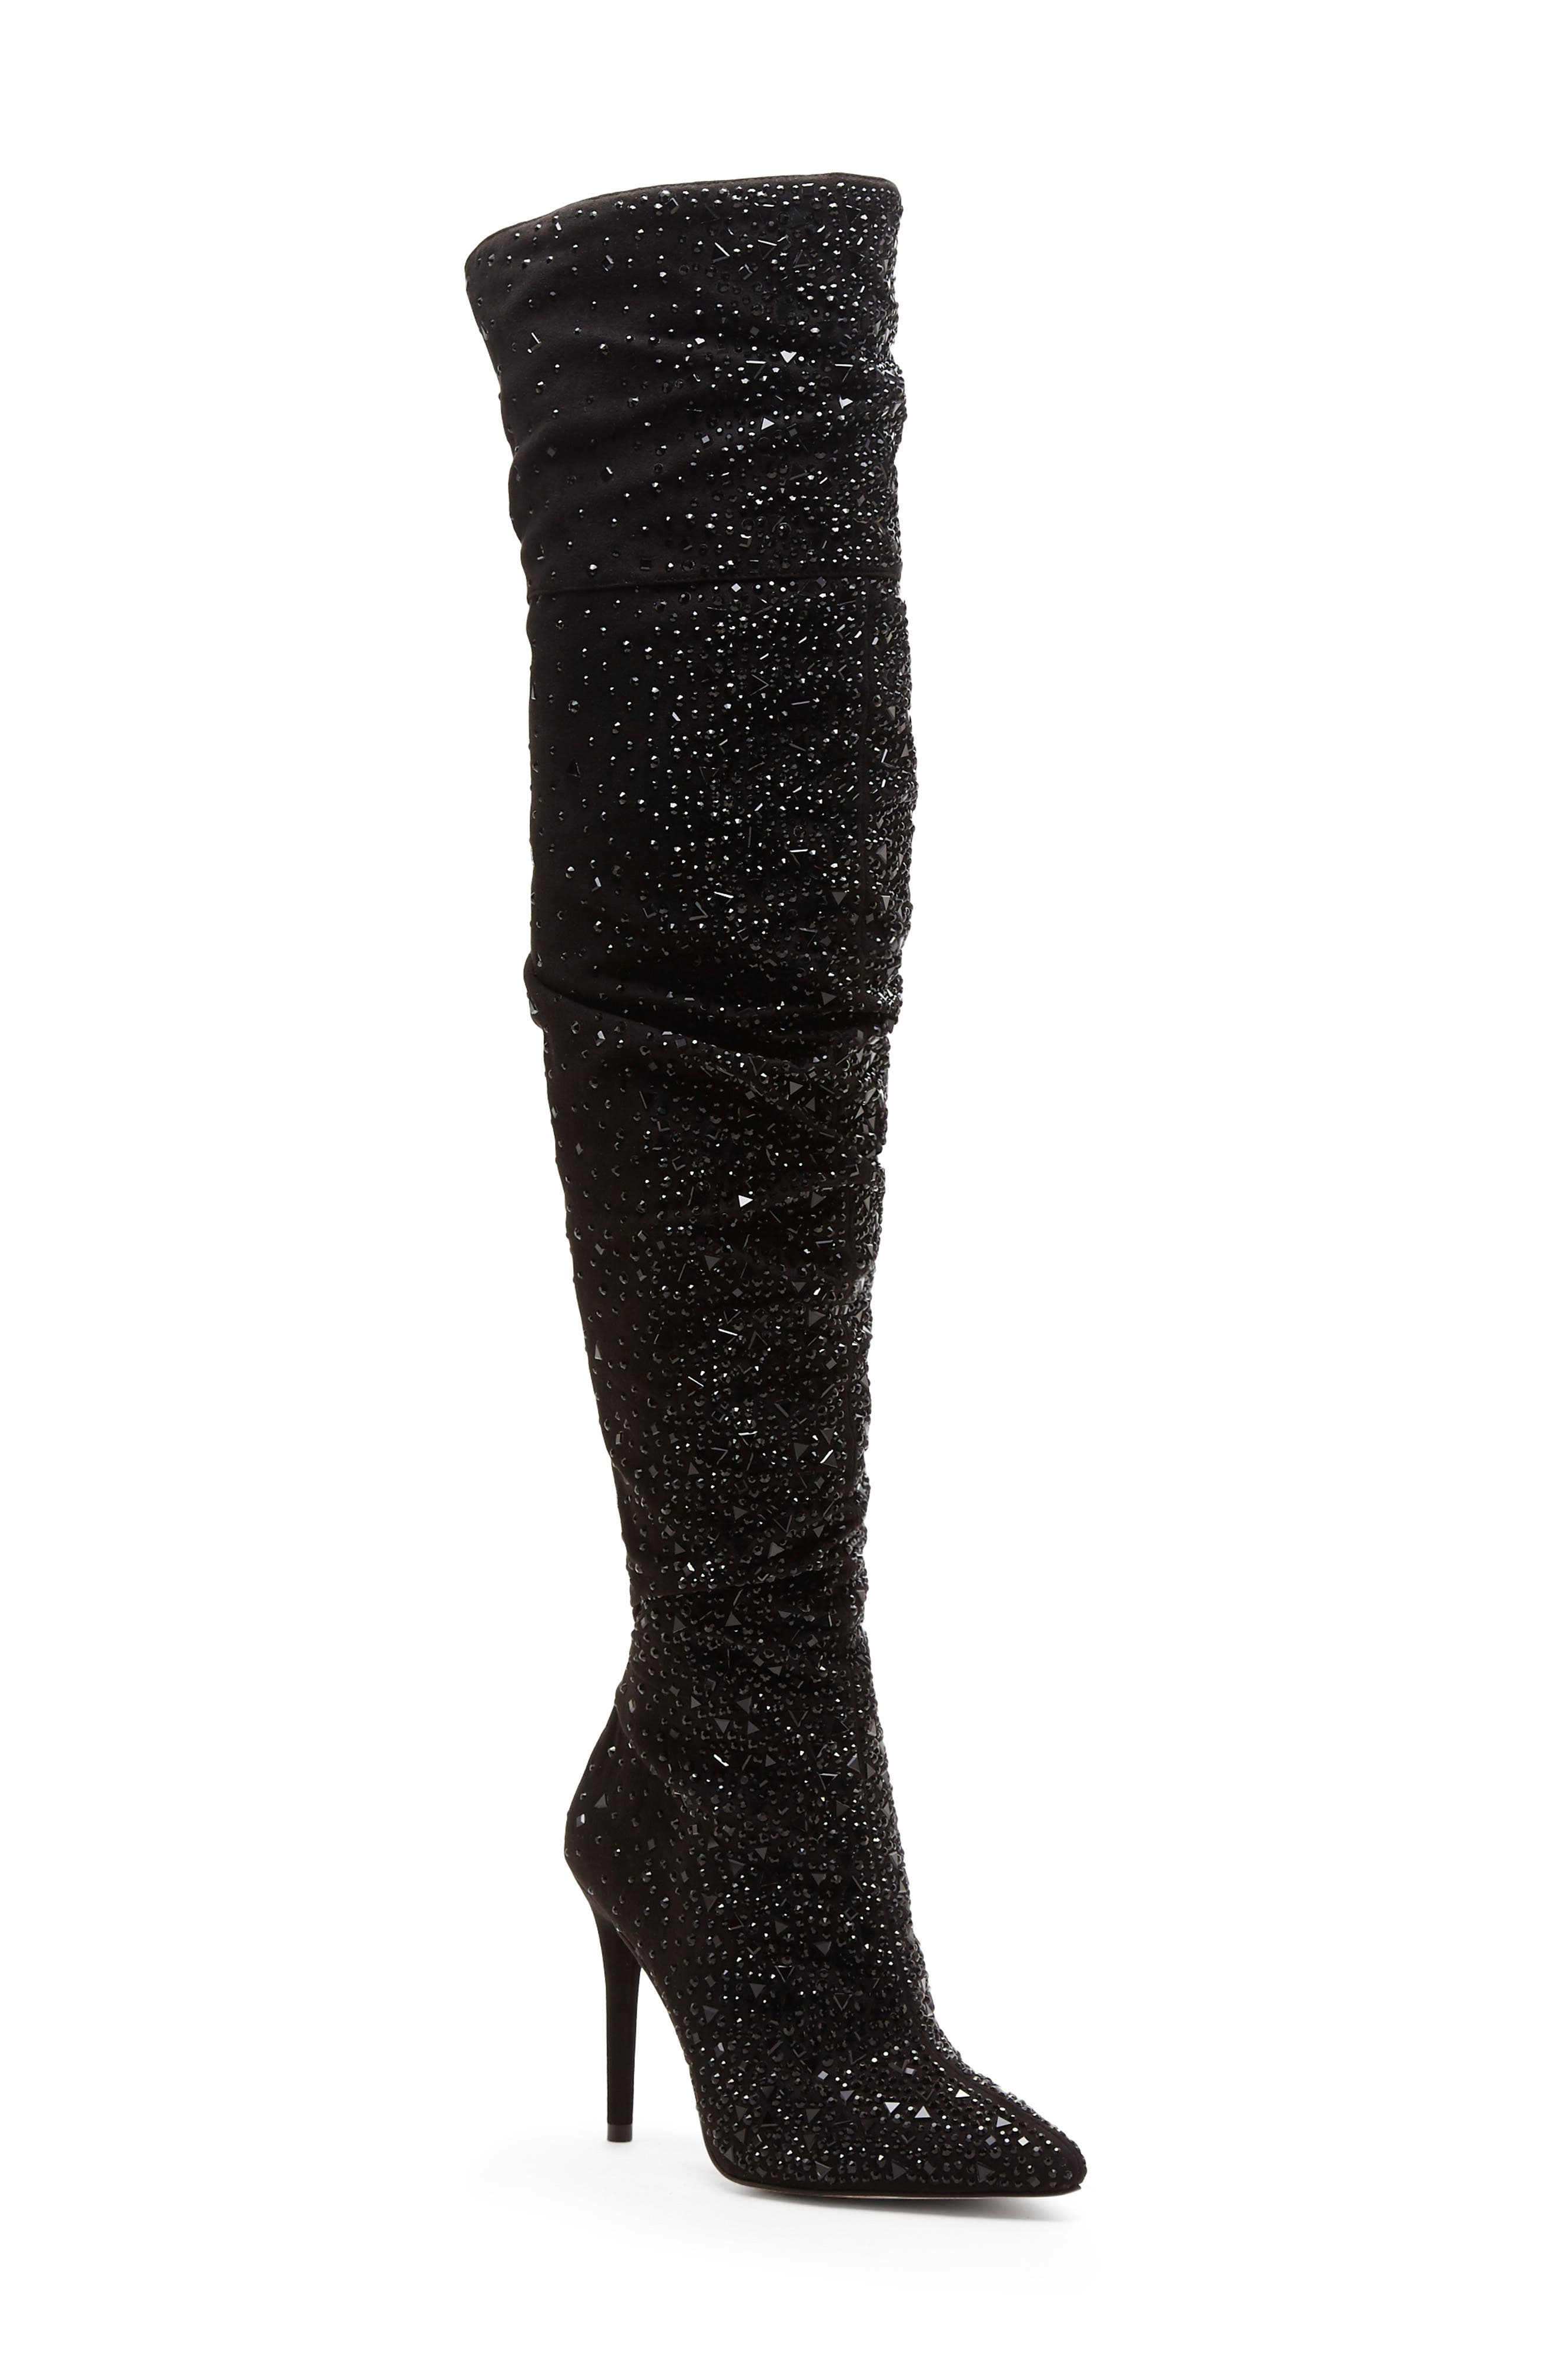 Luxella Over the Knee Boot,                         Main,                         color, BLACK SPARKLES